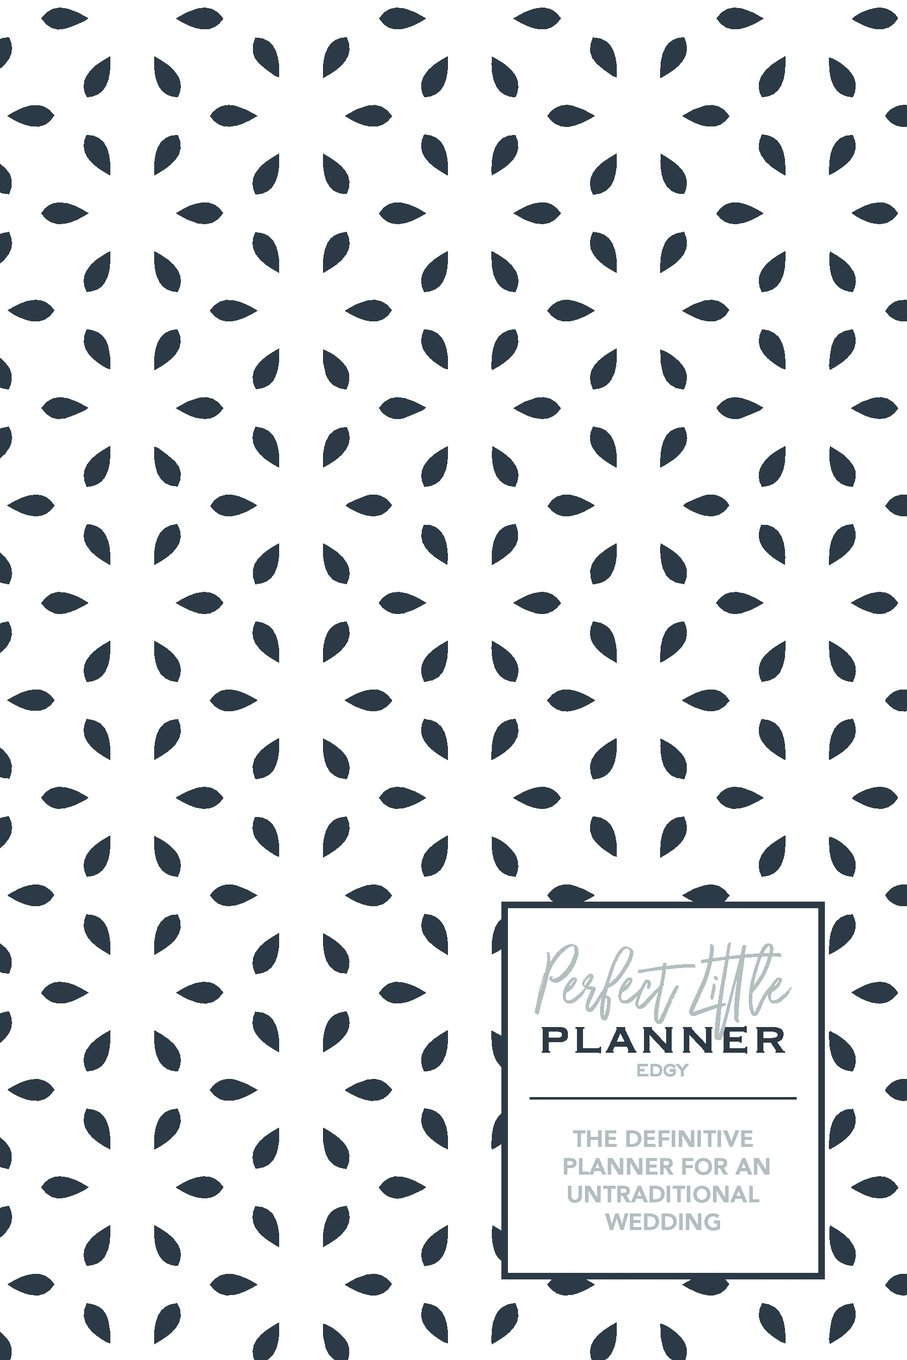 Perfect Little Planner: Edgy